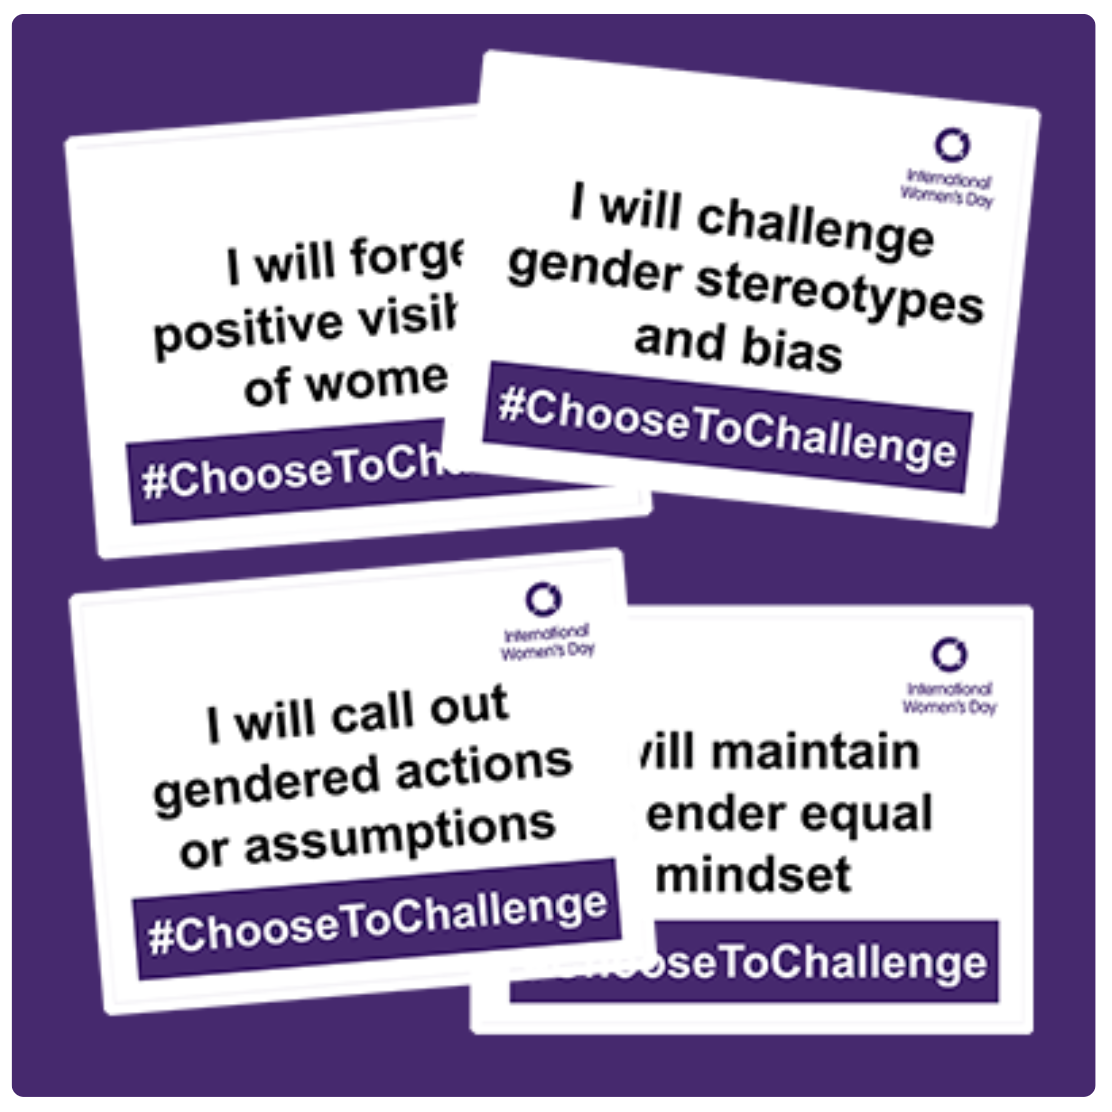 international women's day #choosetochallenge campaign